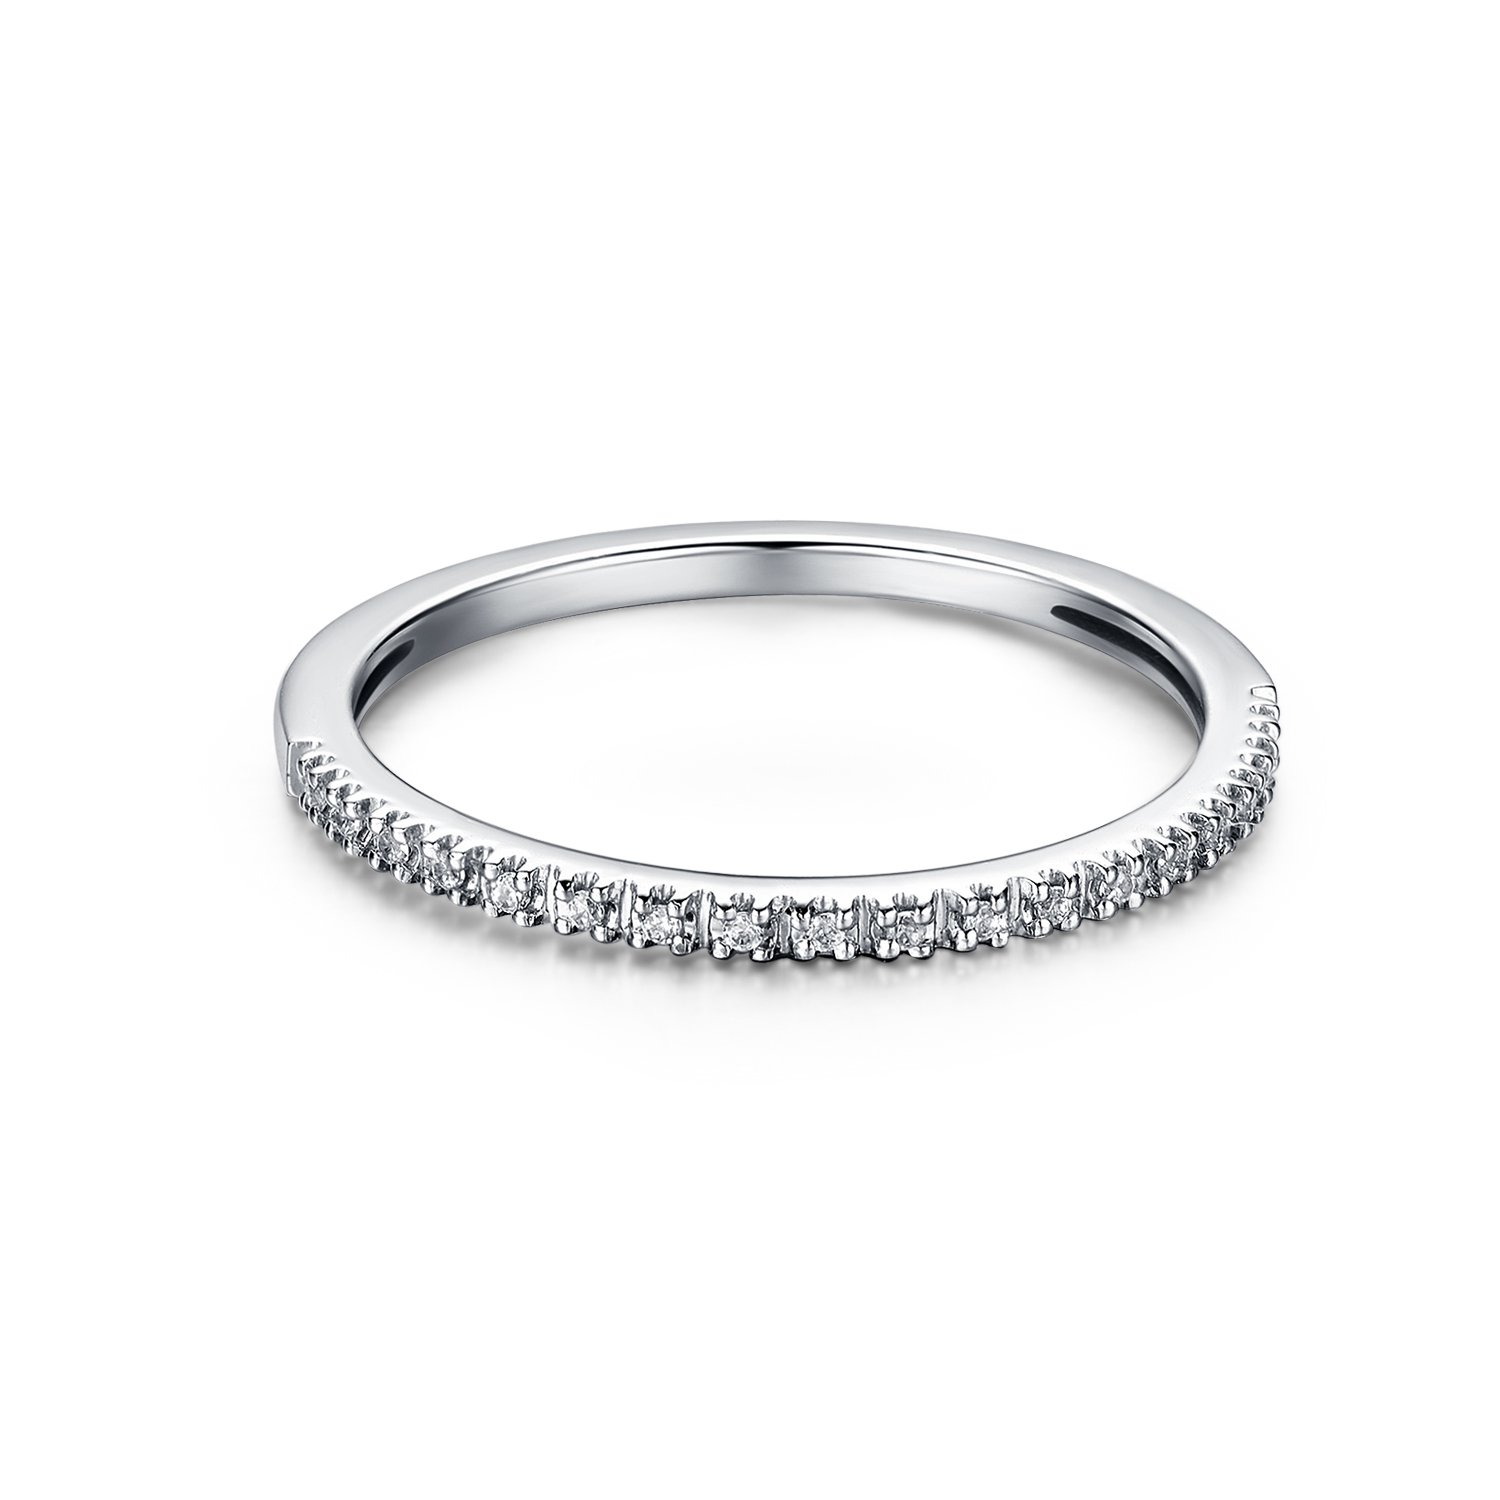 1.5mm Rhodium Plated Sterling Silver Riviera Petite Micropave Cubic Zirconia CZ Half Eternity Ring (8.5)